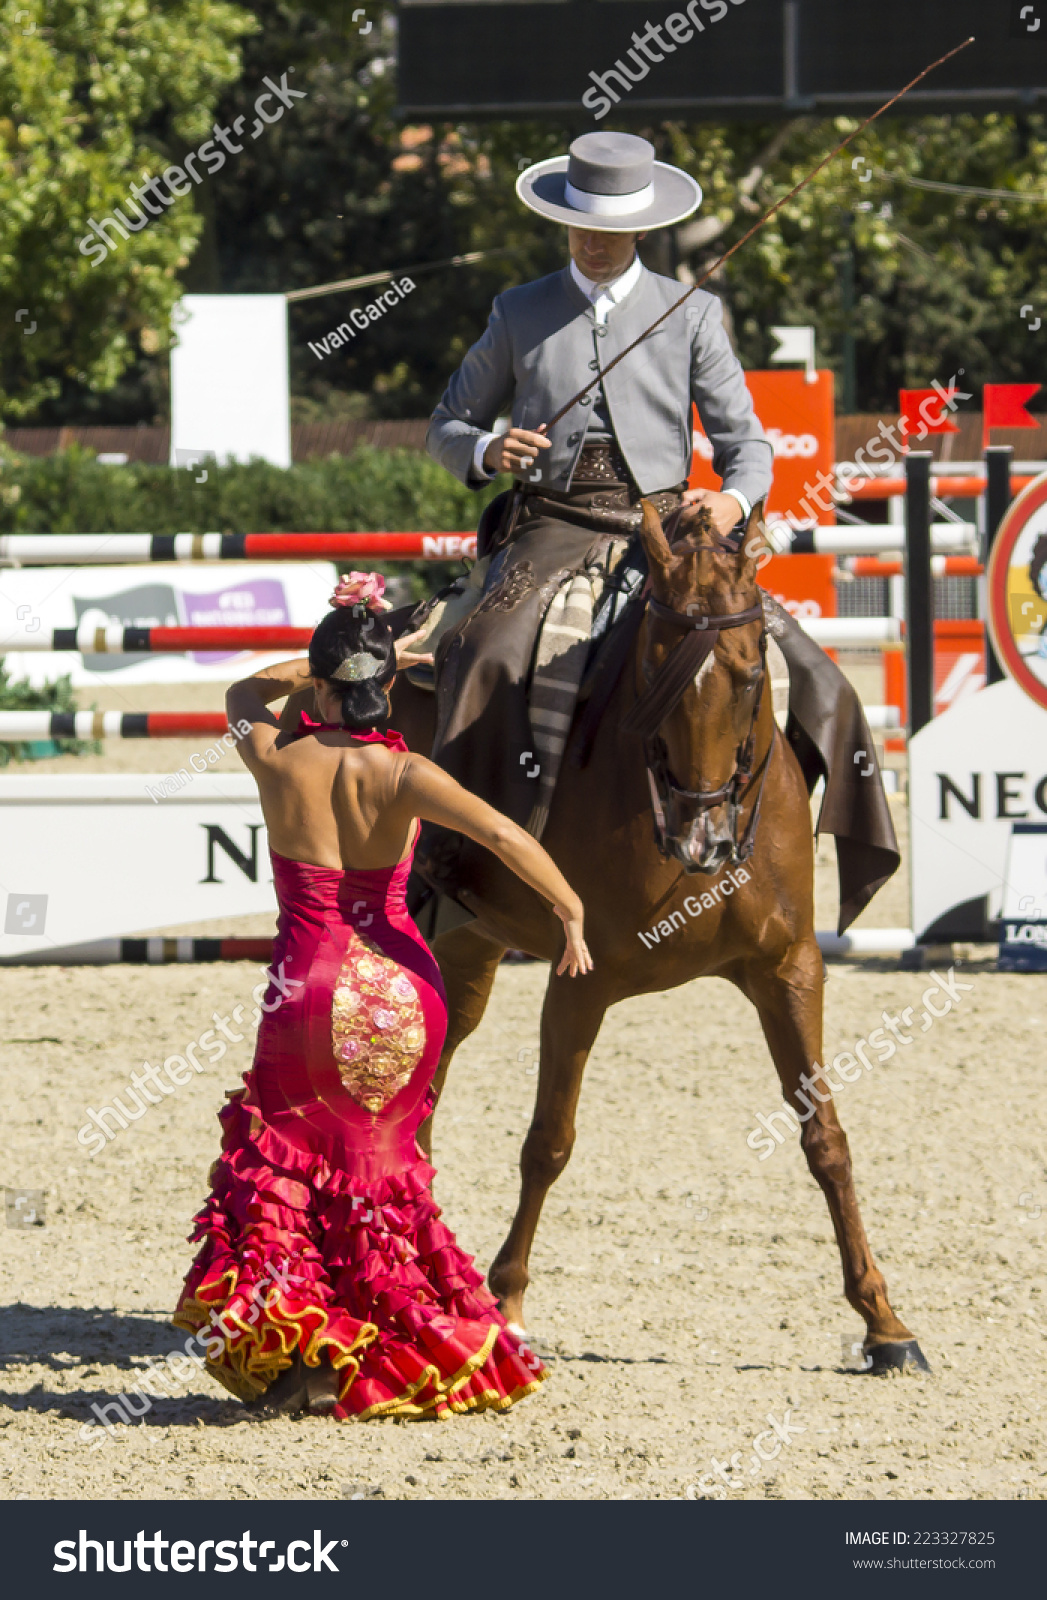 BARCELONA SPAIN OCTOBER 11 Flamenco Equestrian Exhibition at the 103rd CSIO event at the Real Club de Polo Barcelona on October 11 2014 in Barcelona Spain